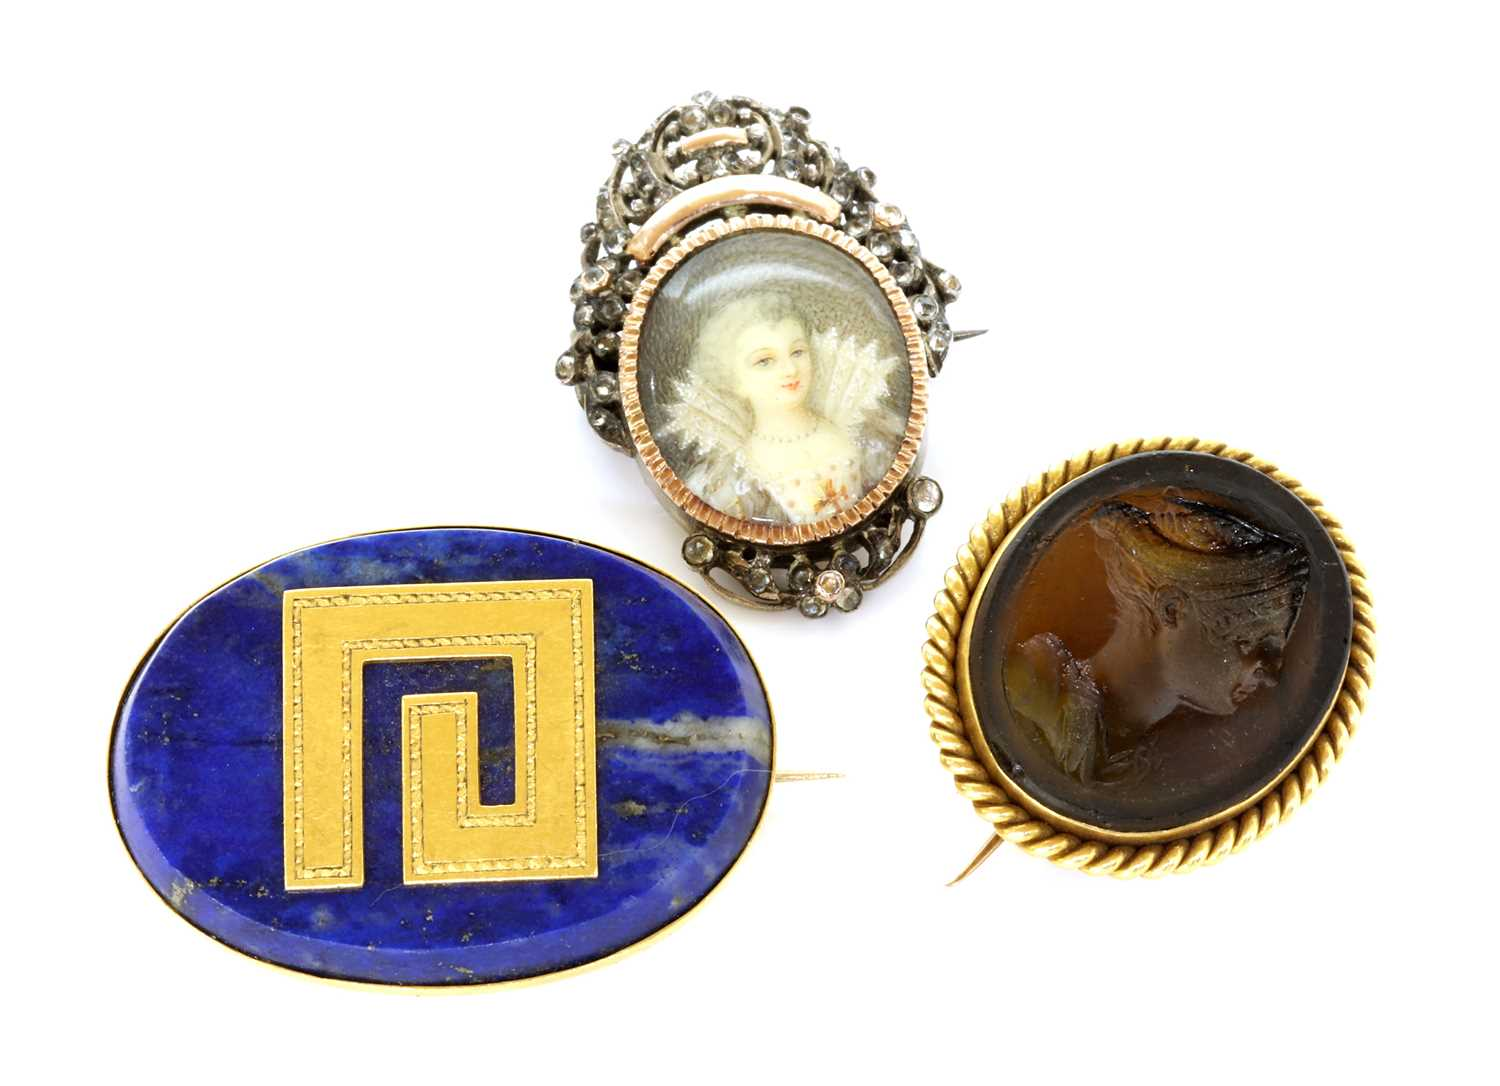 Lot 81 - A late Victorian gold mounted Tassie intaglio brooch, by Benzie of Cowes